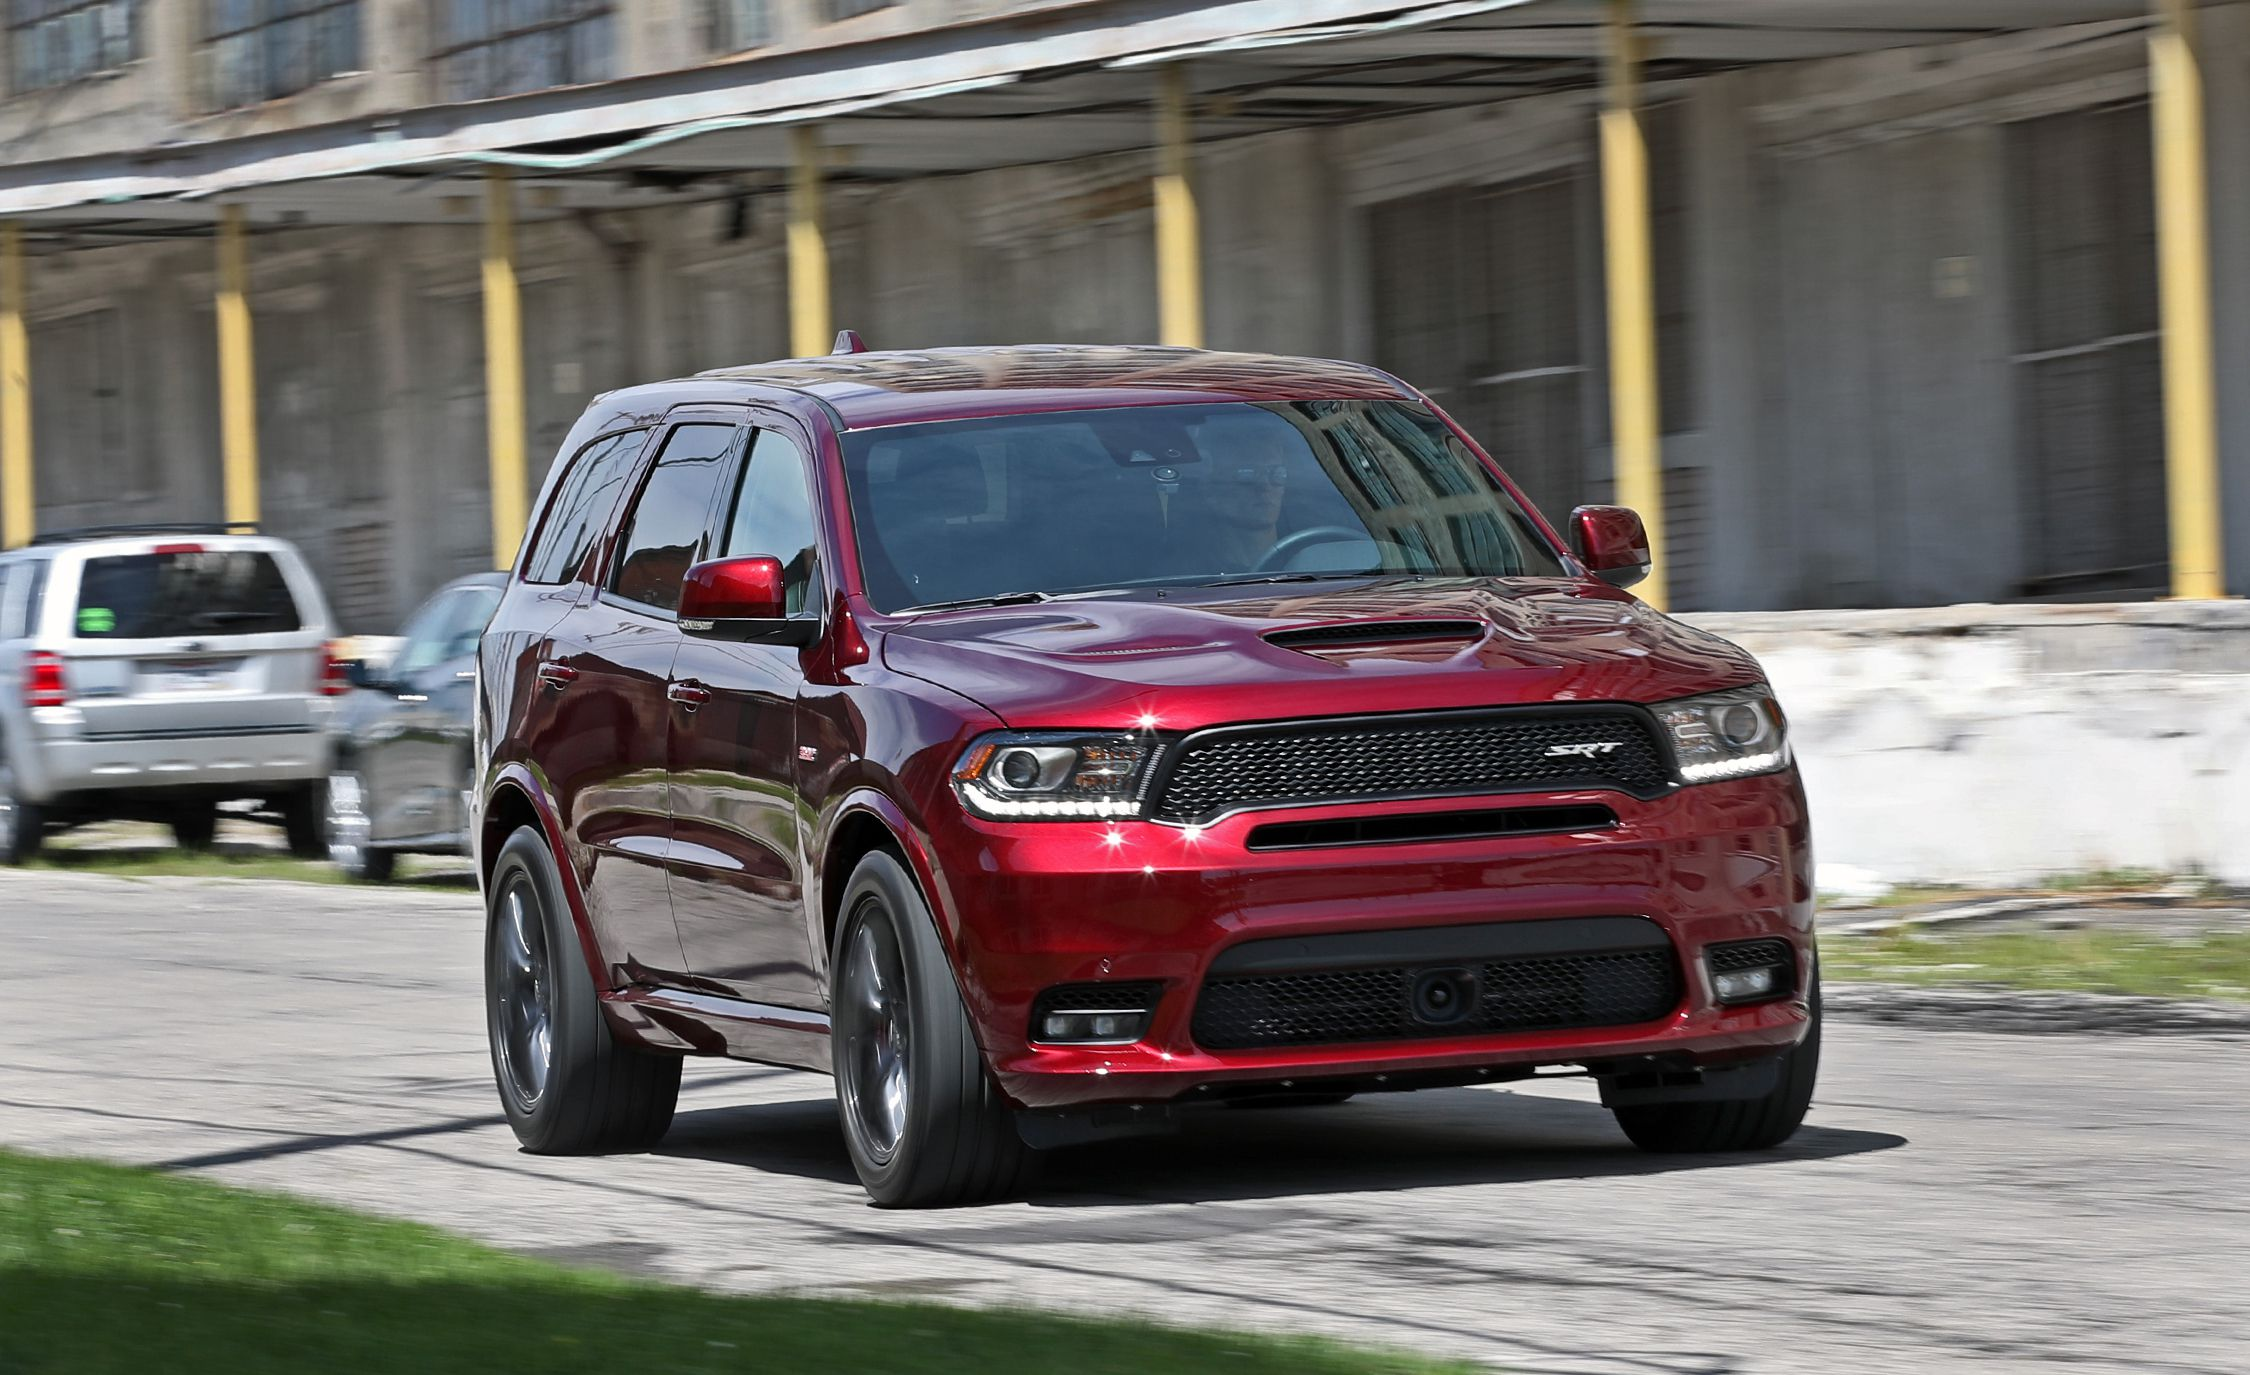 2018 Dodge Durango SRT steals